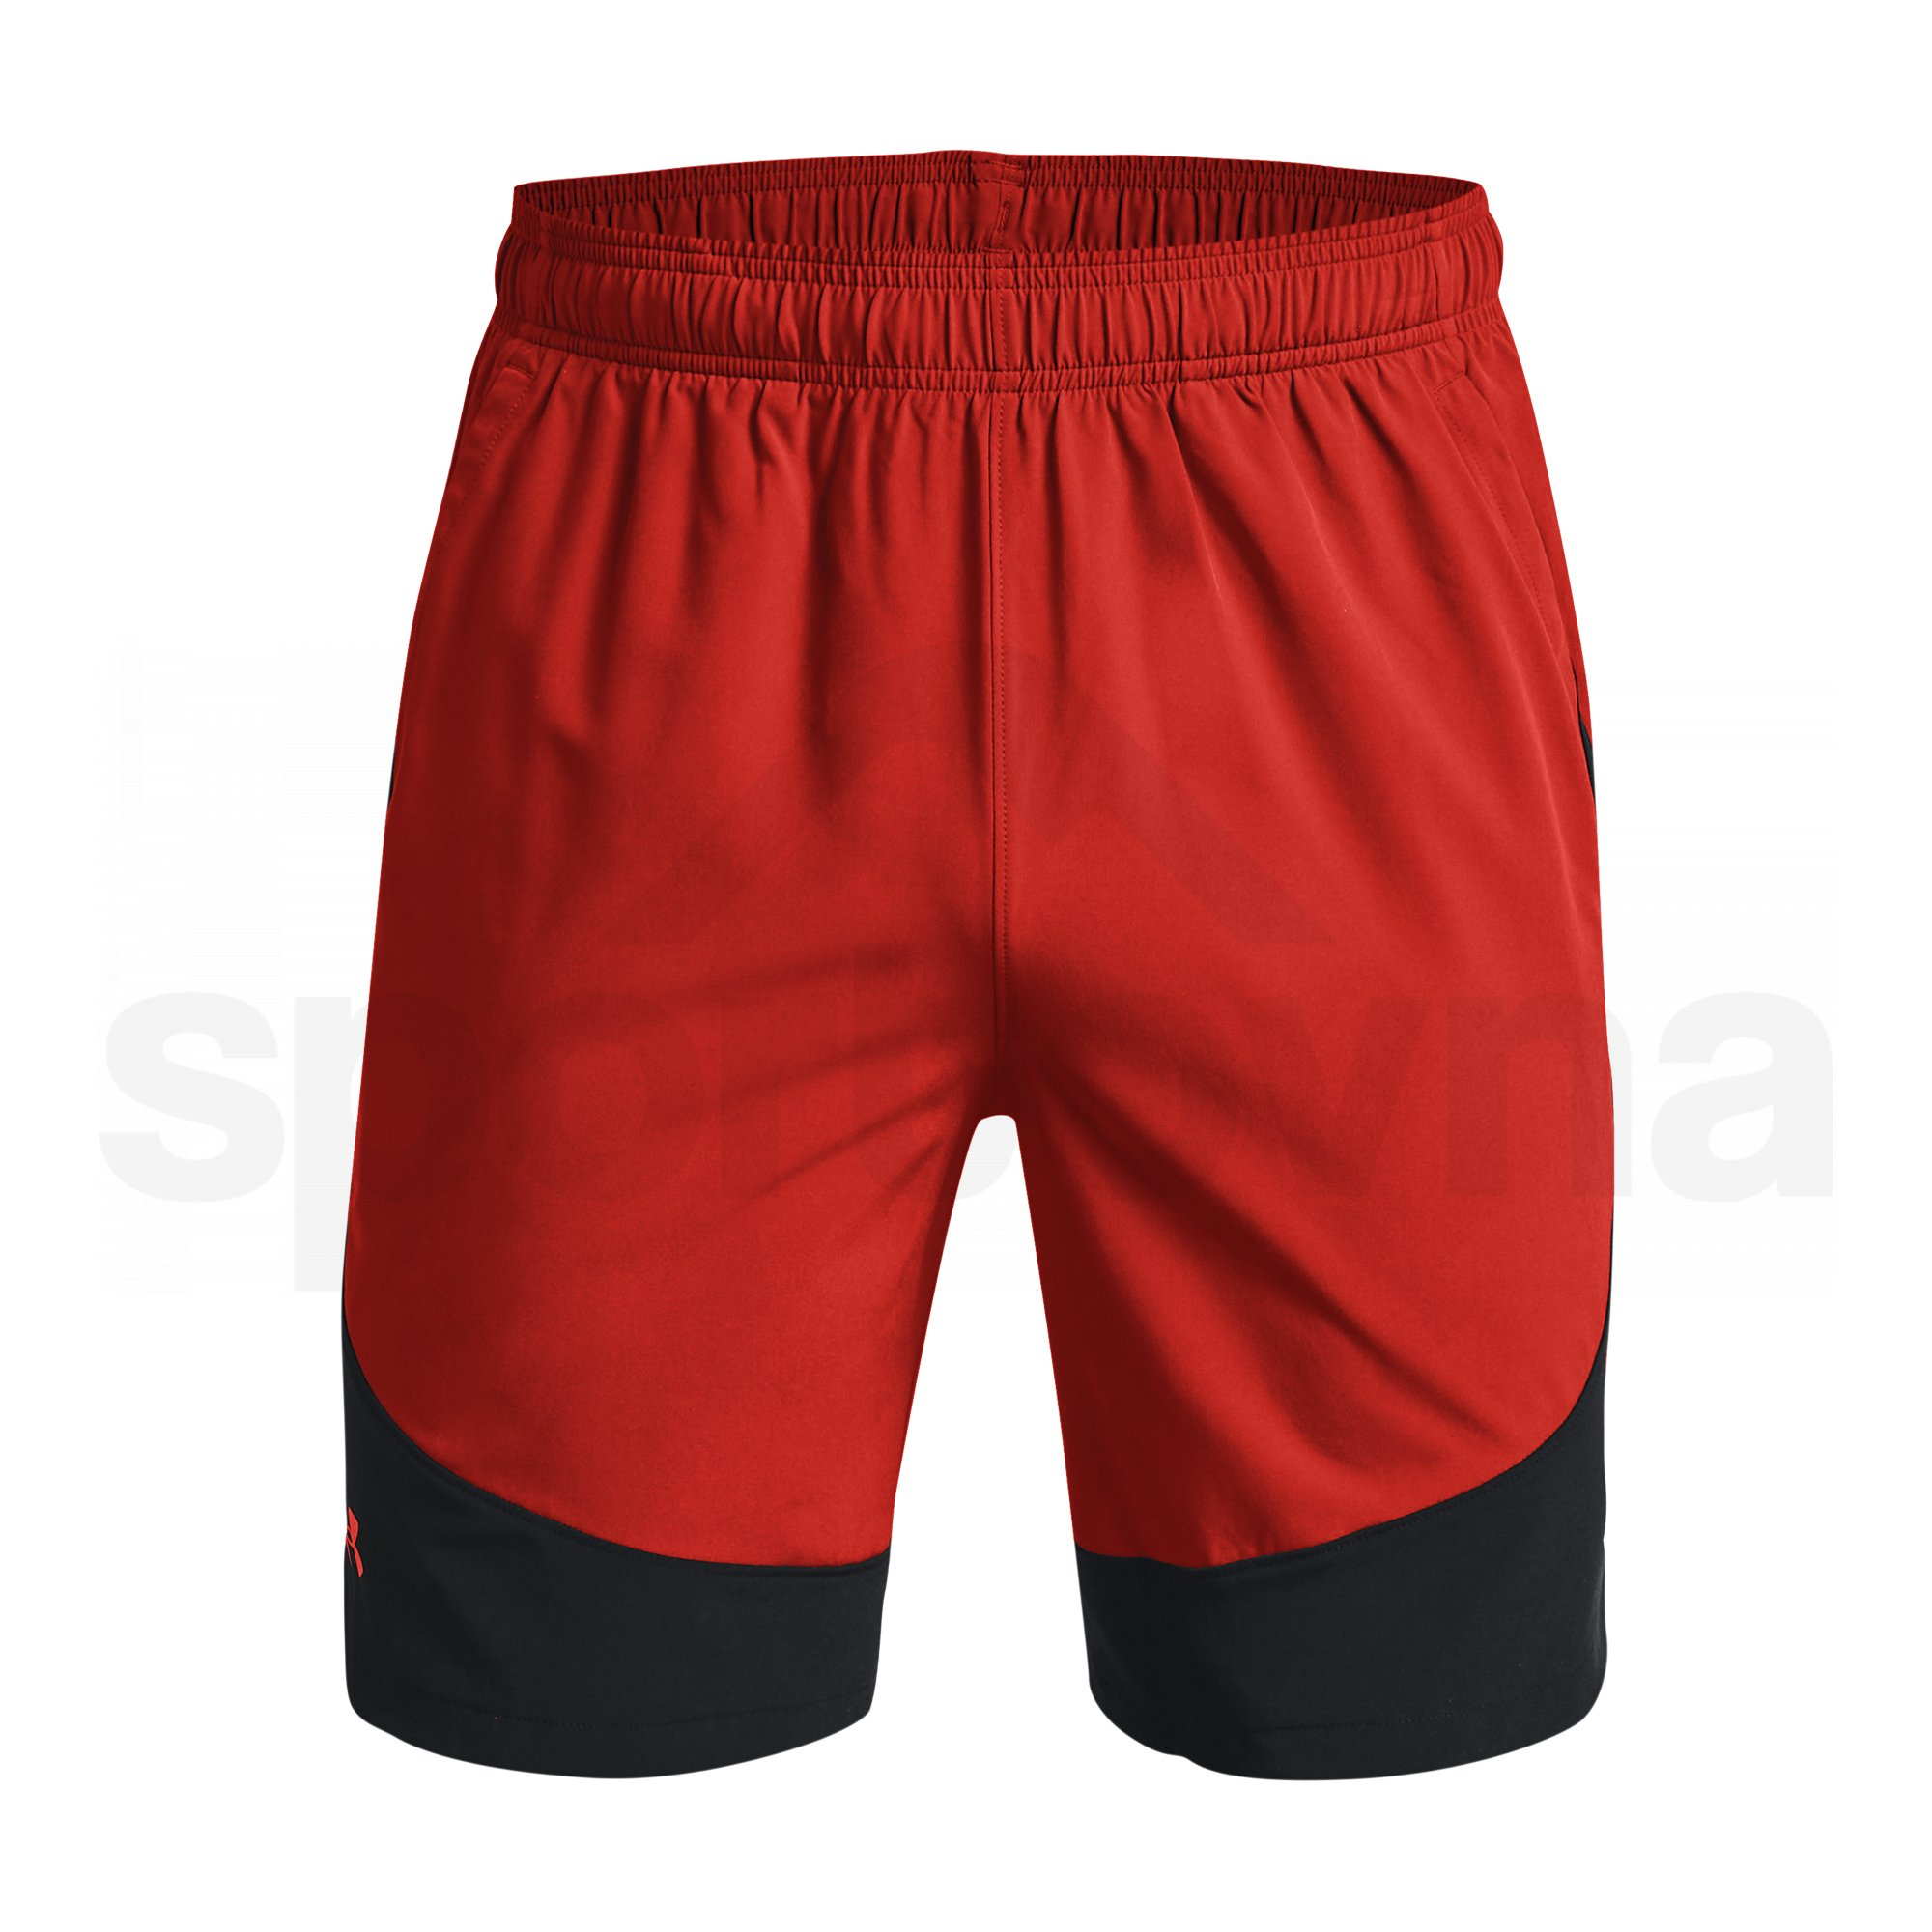 1366142-839_Under Armour HIIT Woven Colorblock Shorts